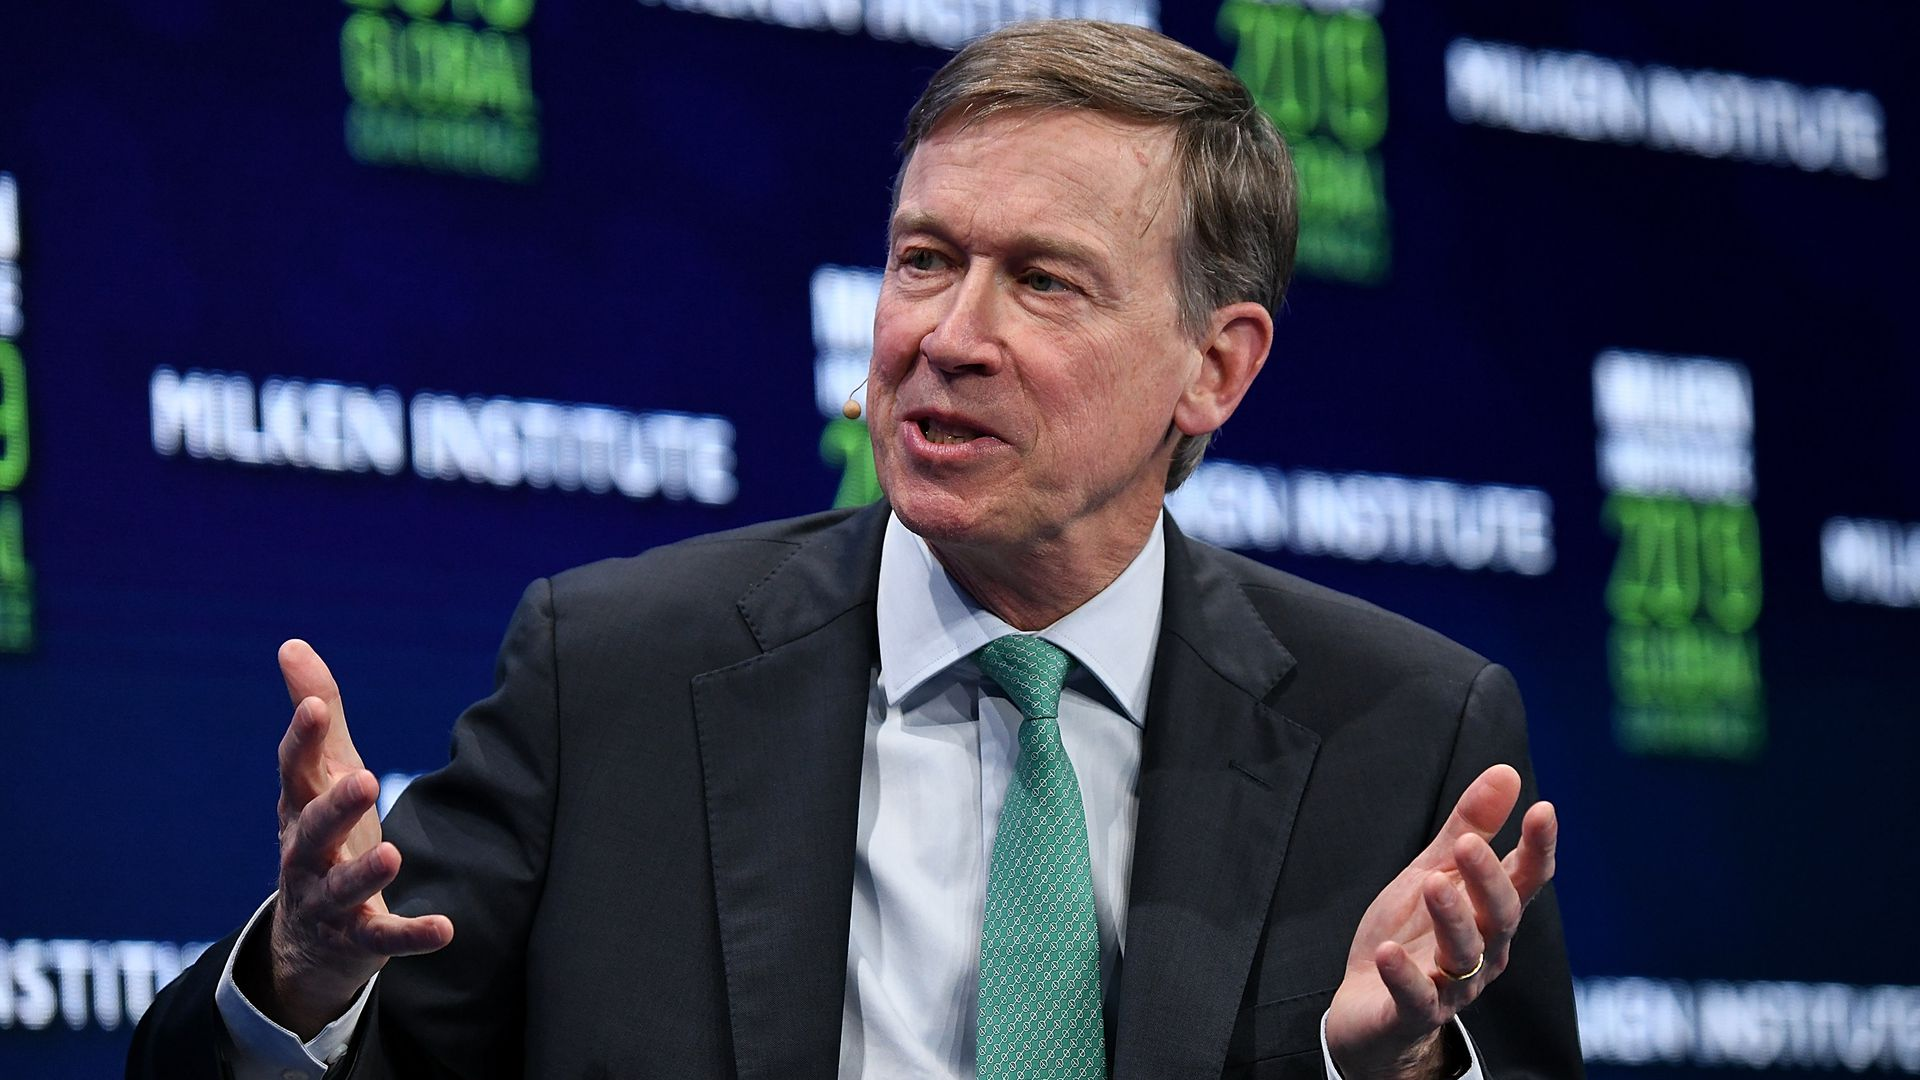 Hickenlooper pledges to expand women's access to long-acting contraception